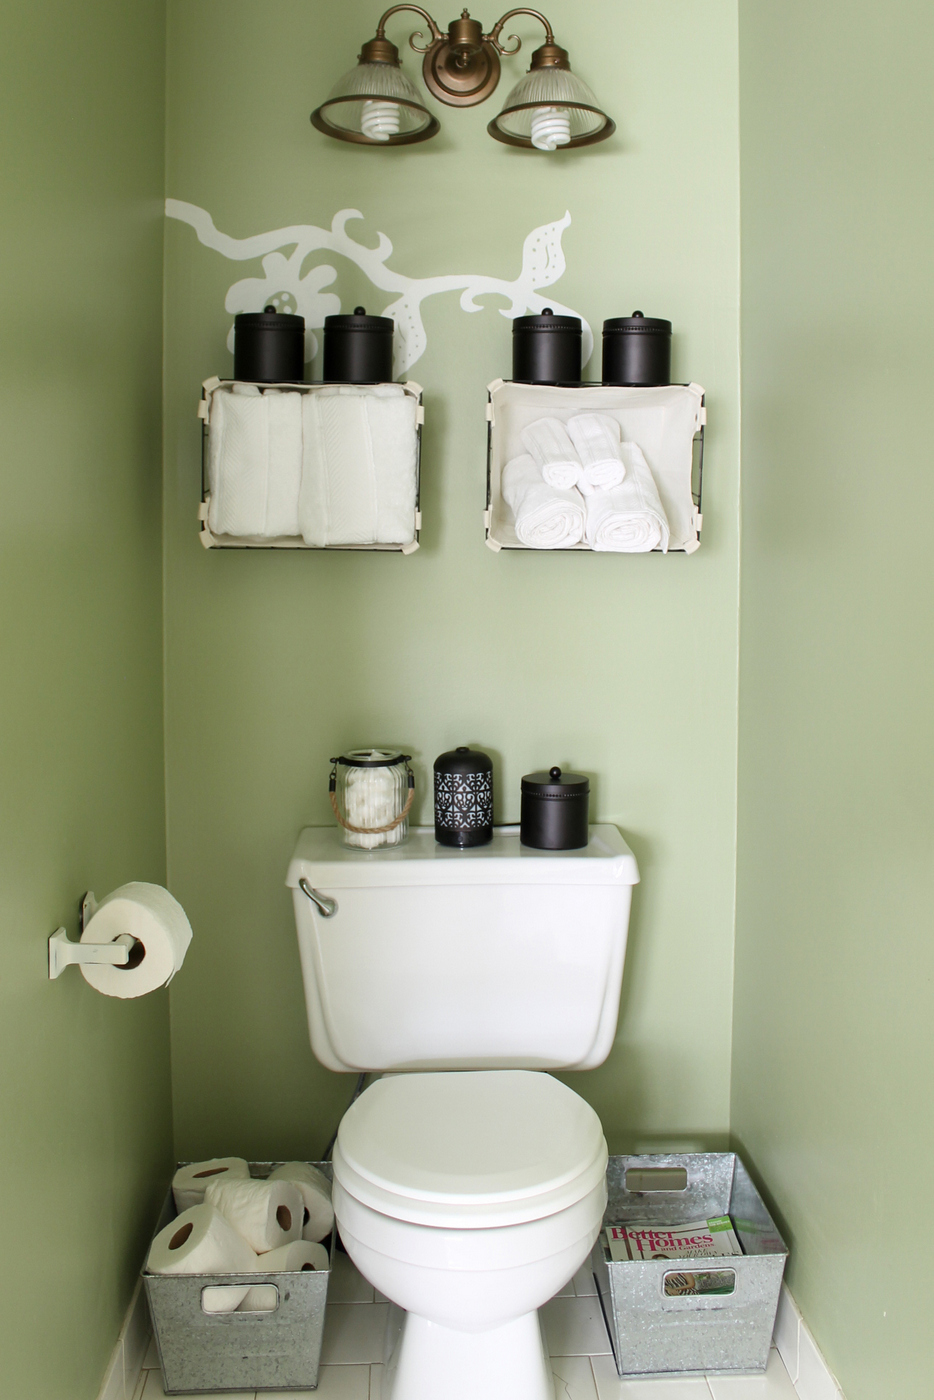 Small bathroom organization ideas the country chic cottage Small home organization